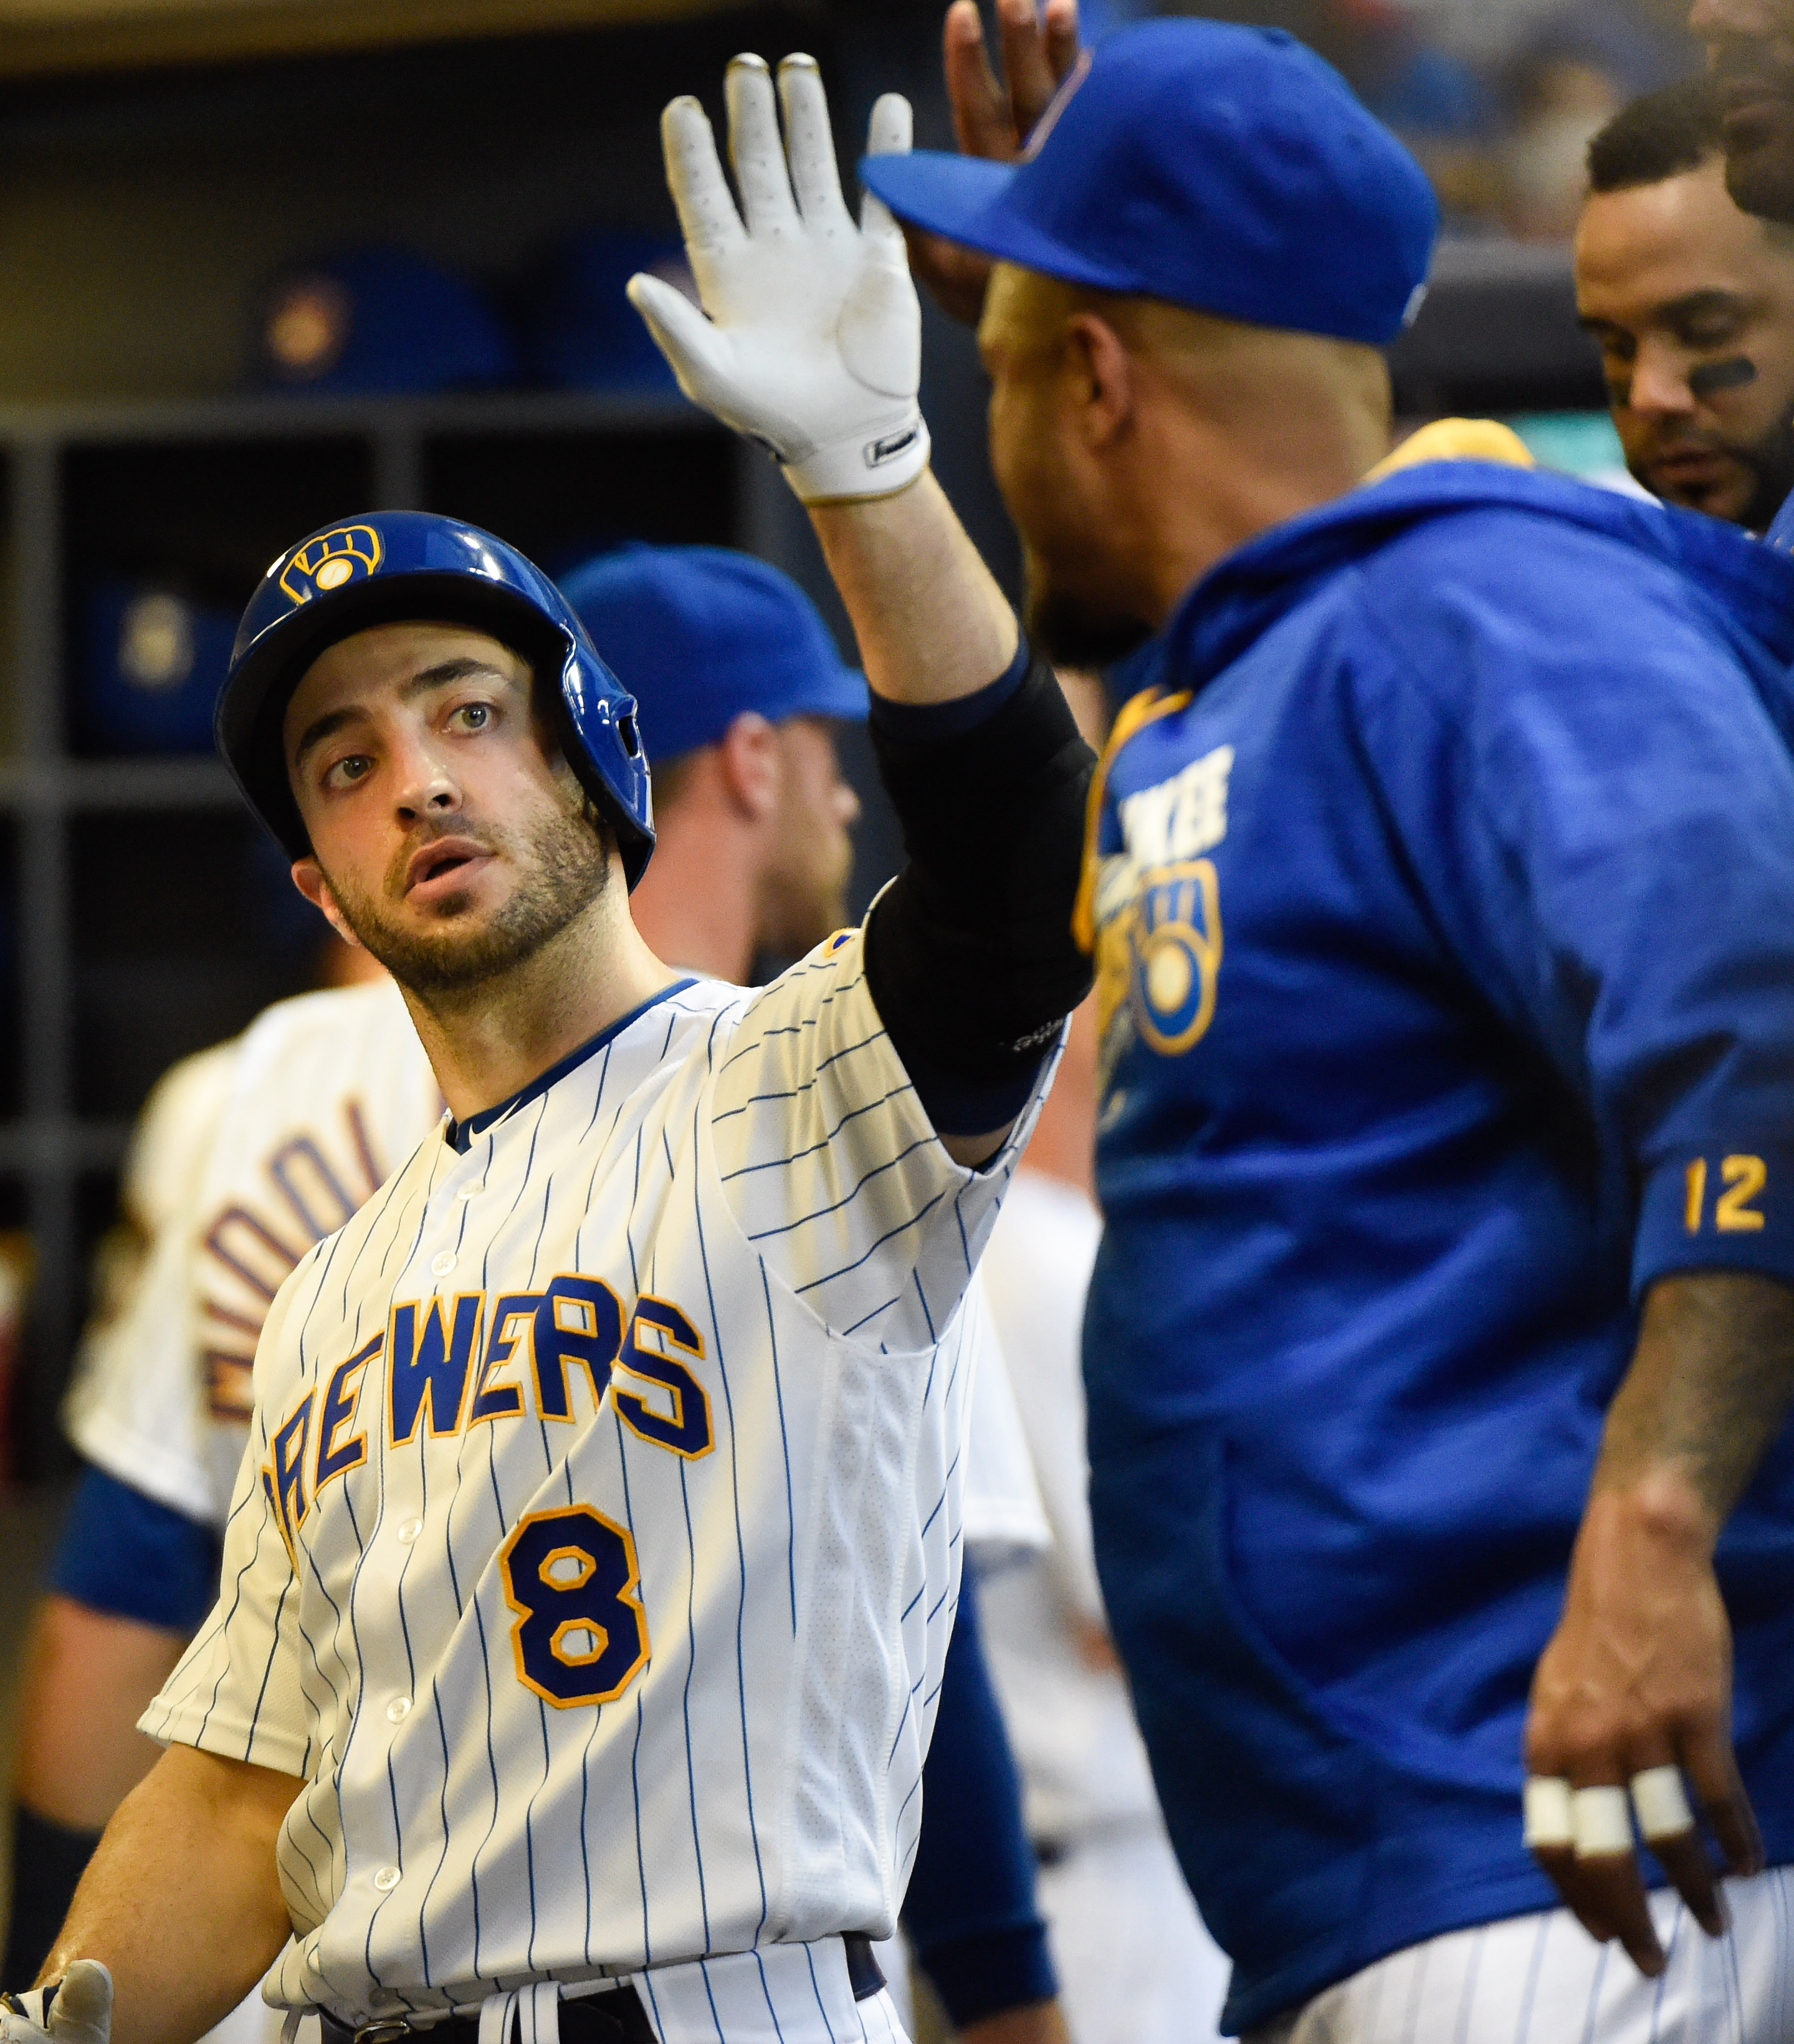 Milwaukee Brewers' Ryan Braun is greeted in the dugout after hitting a solo home run off Chicago Cubs starting pitcher Jason Hammel during the fourth inning of a baseball game Friday, July 22, 2016, in Milwaukee. (AP Photo/Benny Sieu)